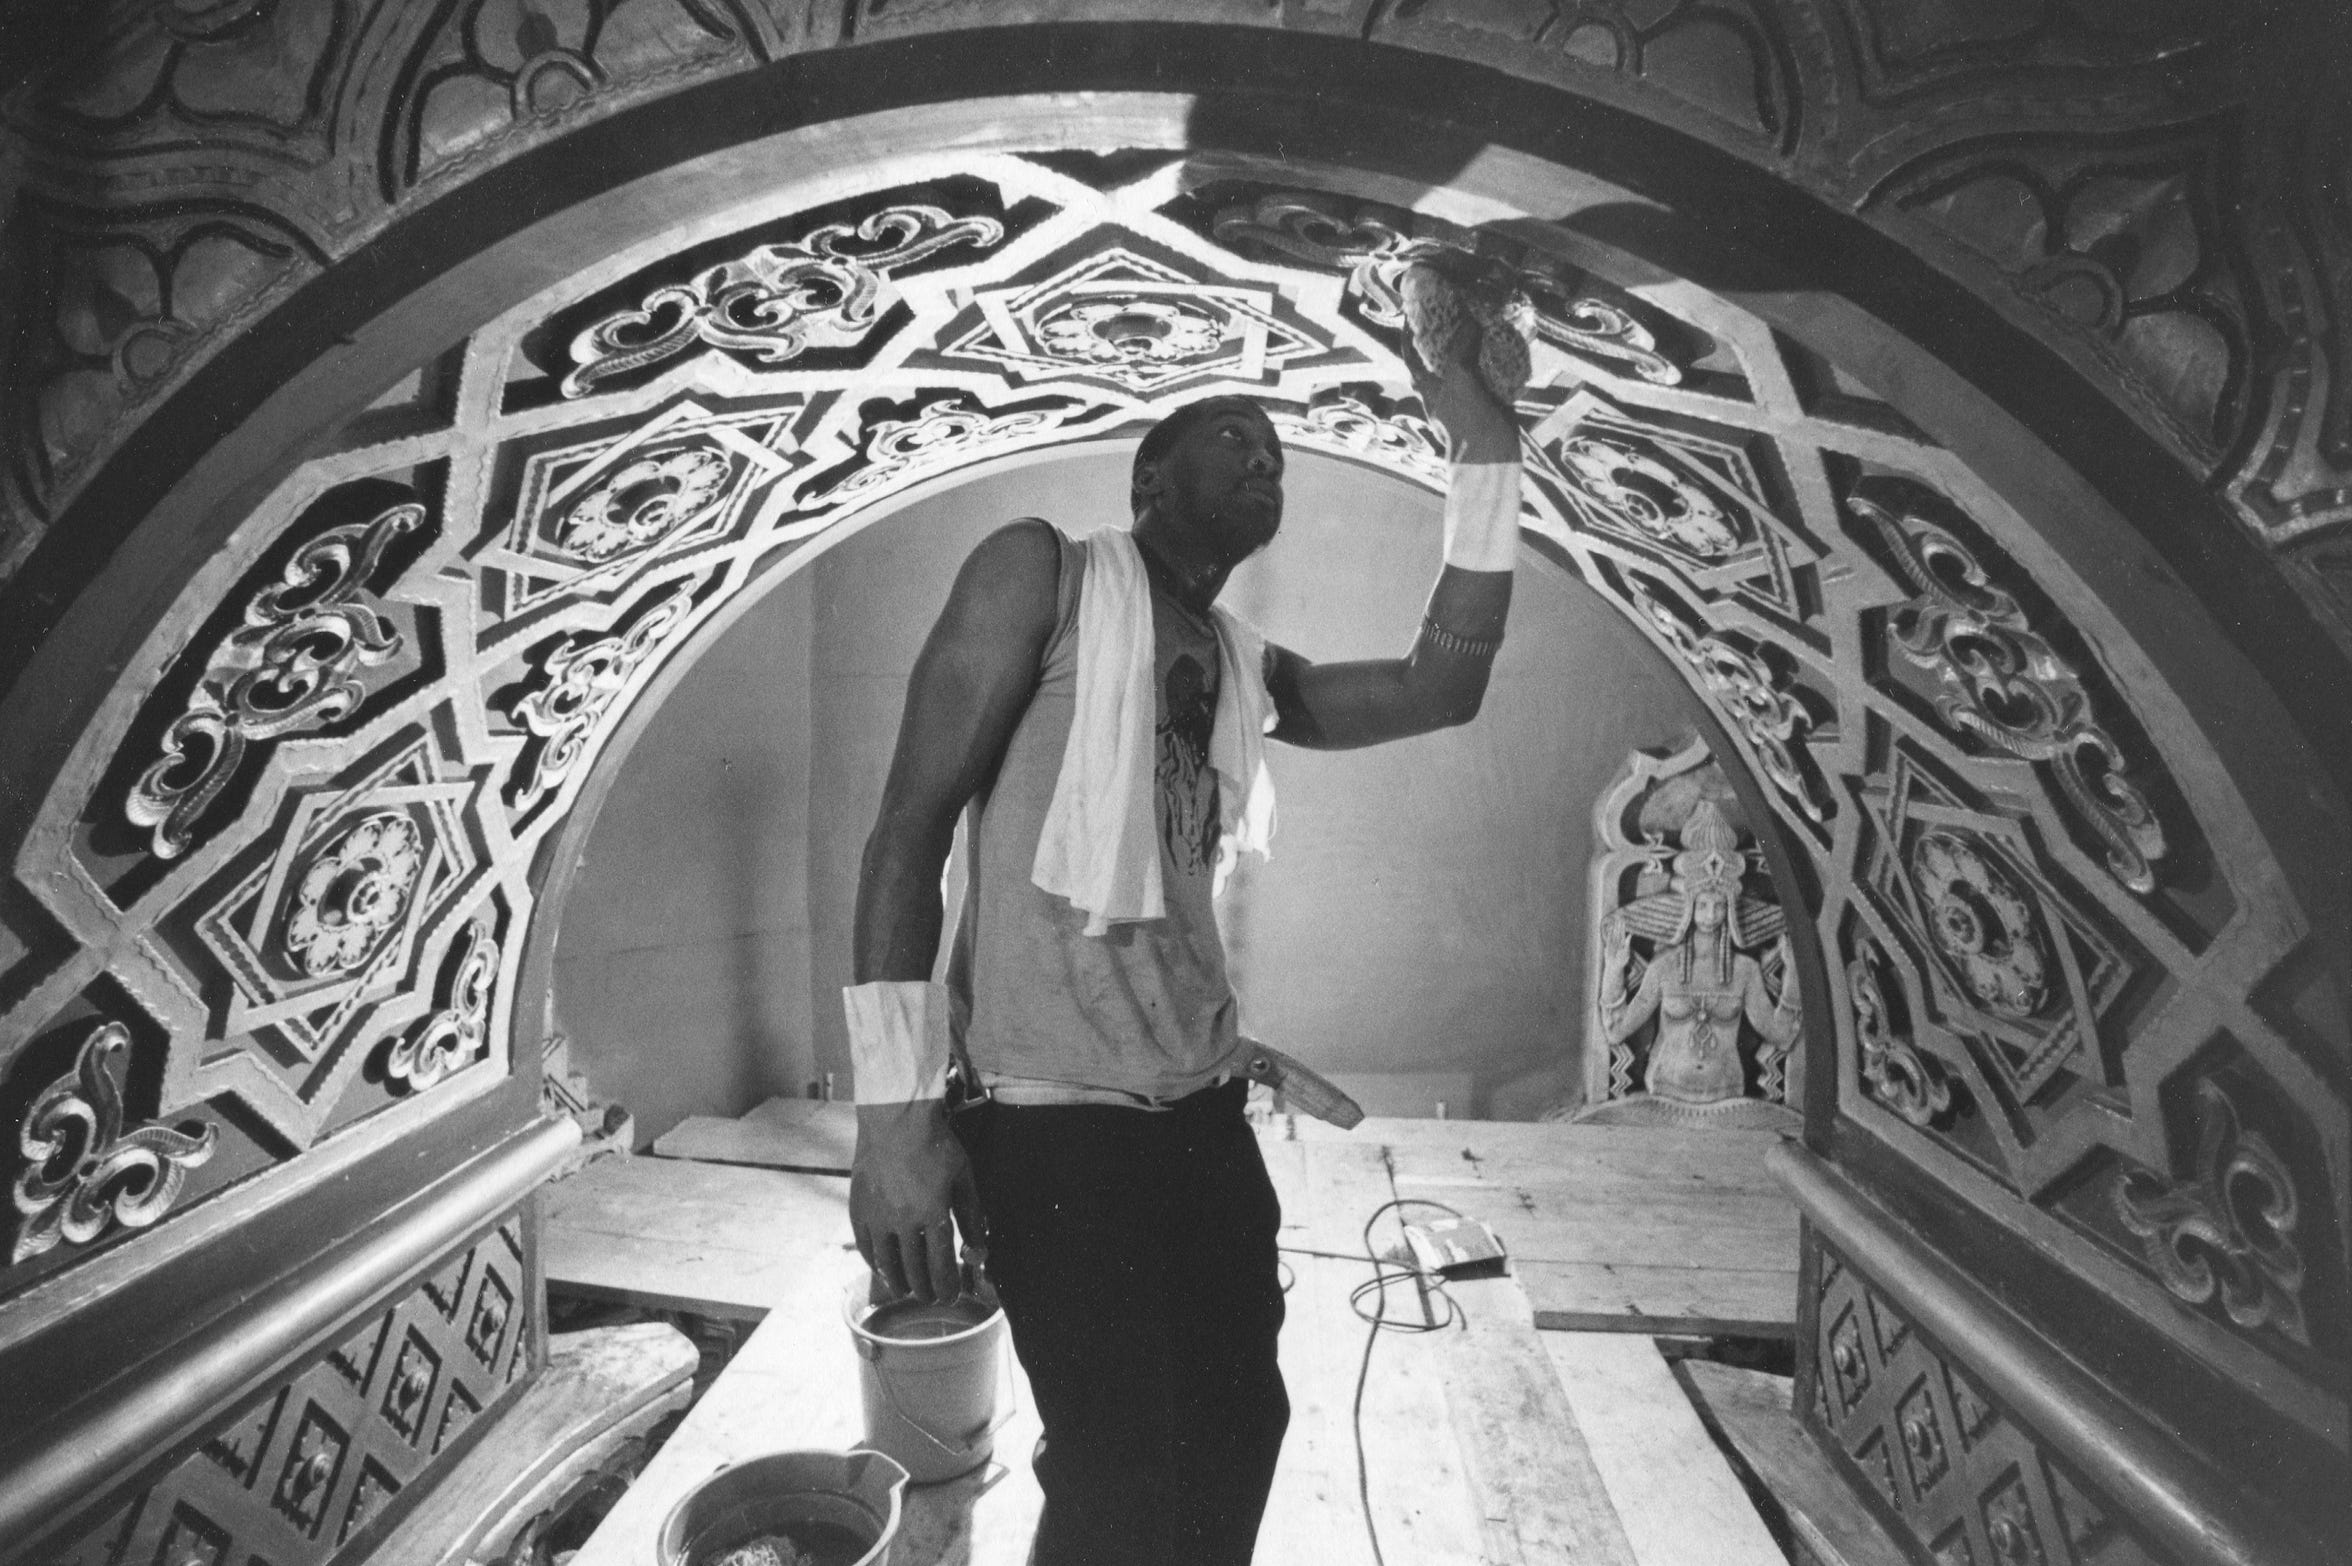 Fox Theatre renovation, Aug. 31, 1989 (Detroit News archive)